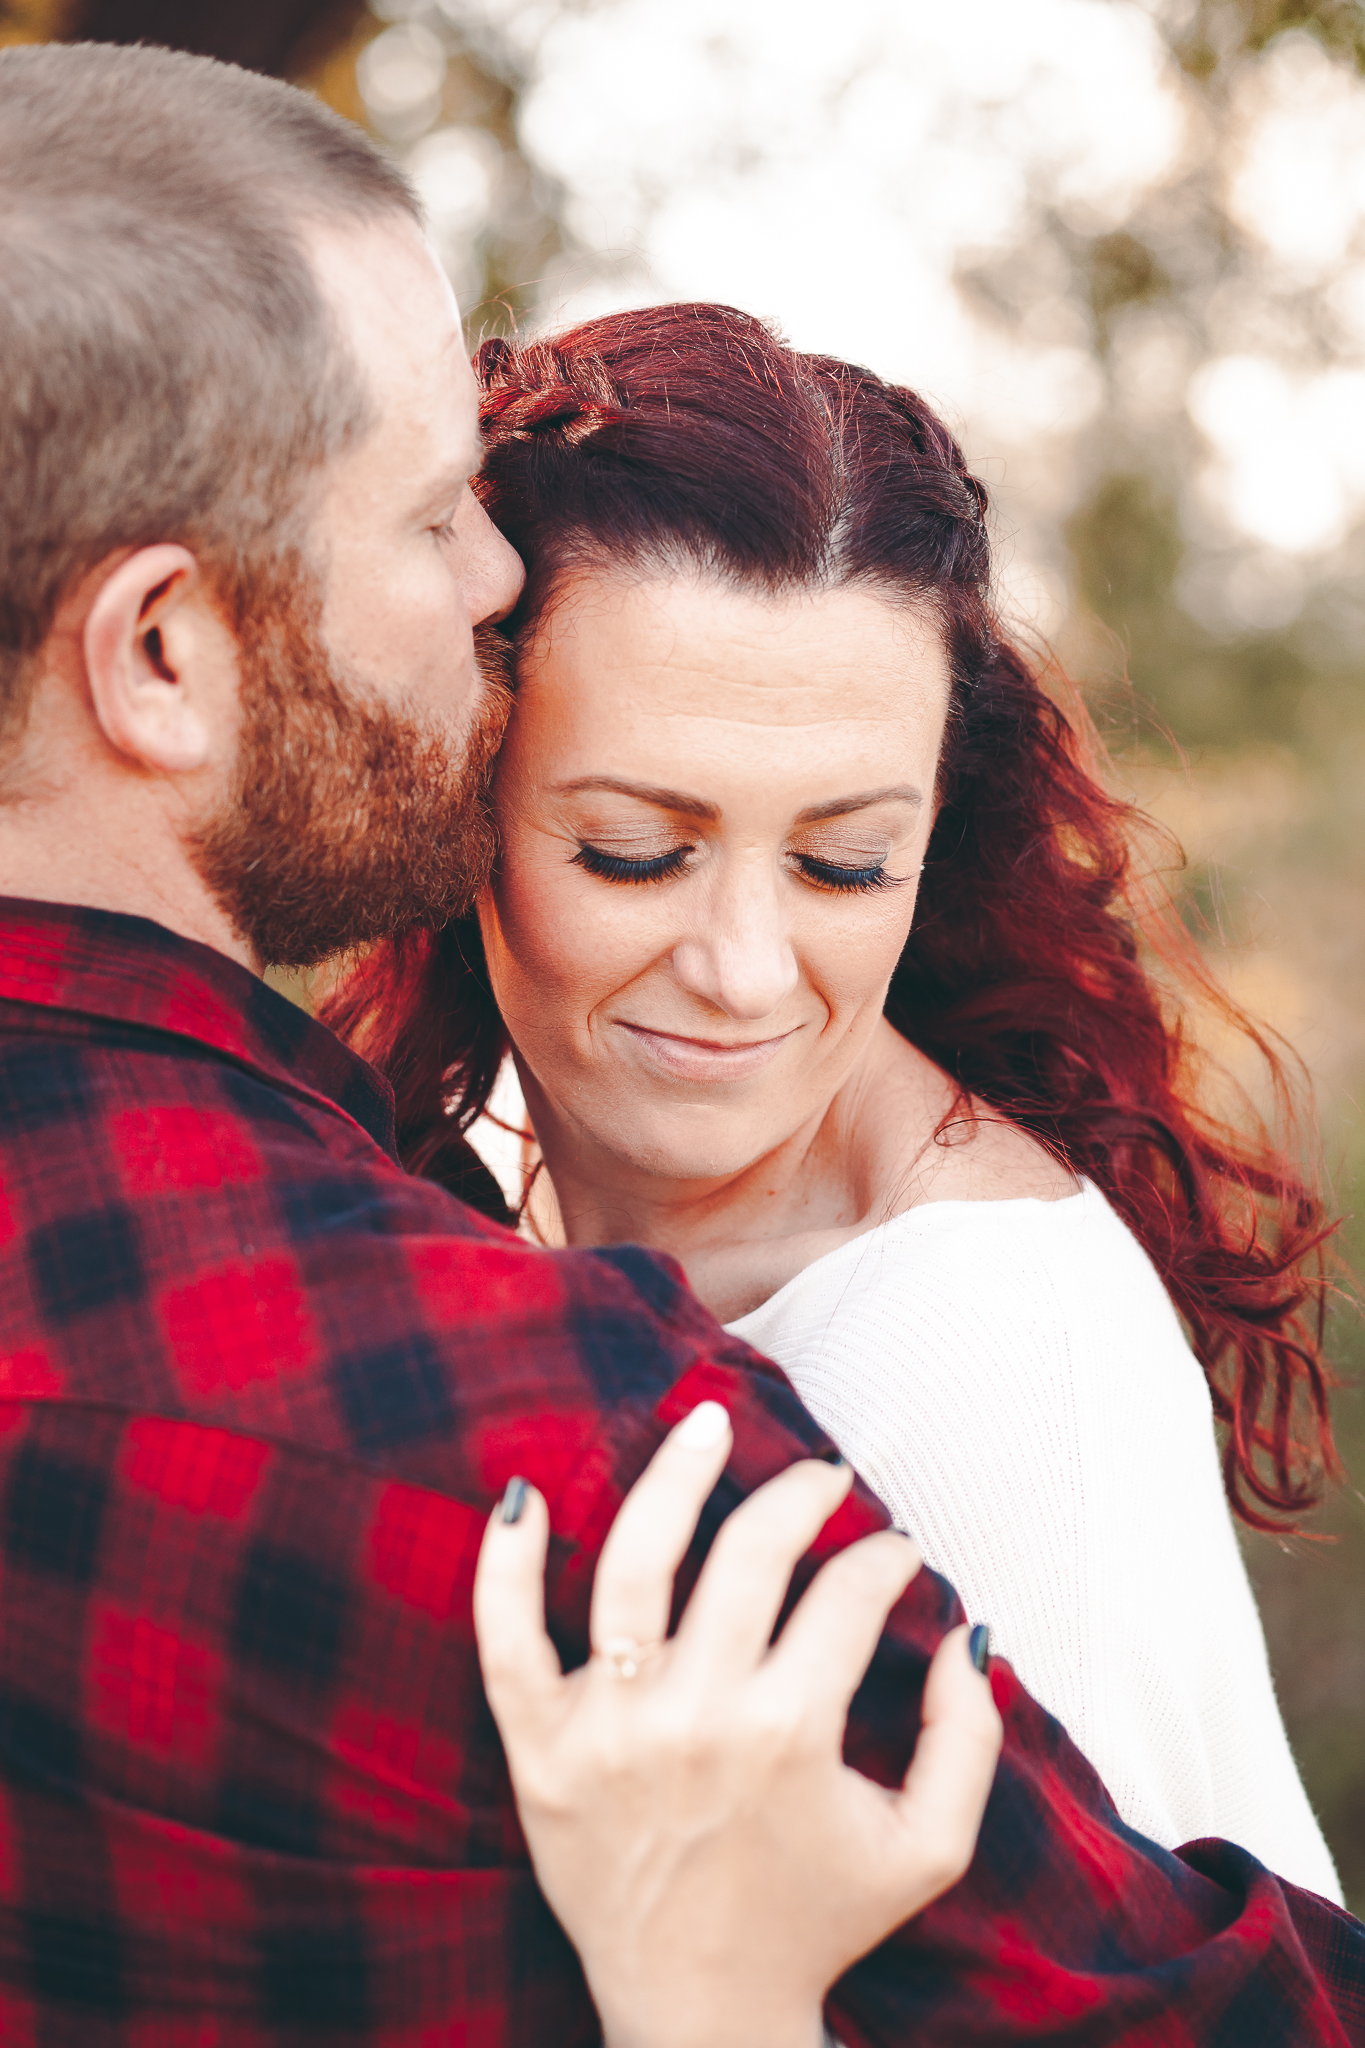 Amy D Photography- Barrie Wedding Photography- Engagement Session- Fall Engagement- Engagement Poses- Barrie Weddings- Wedding Photographer-25.jpg